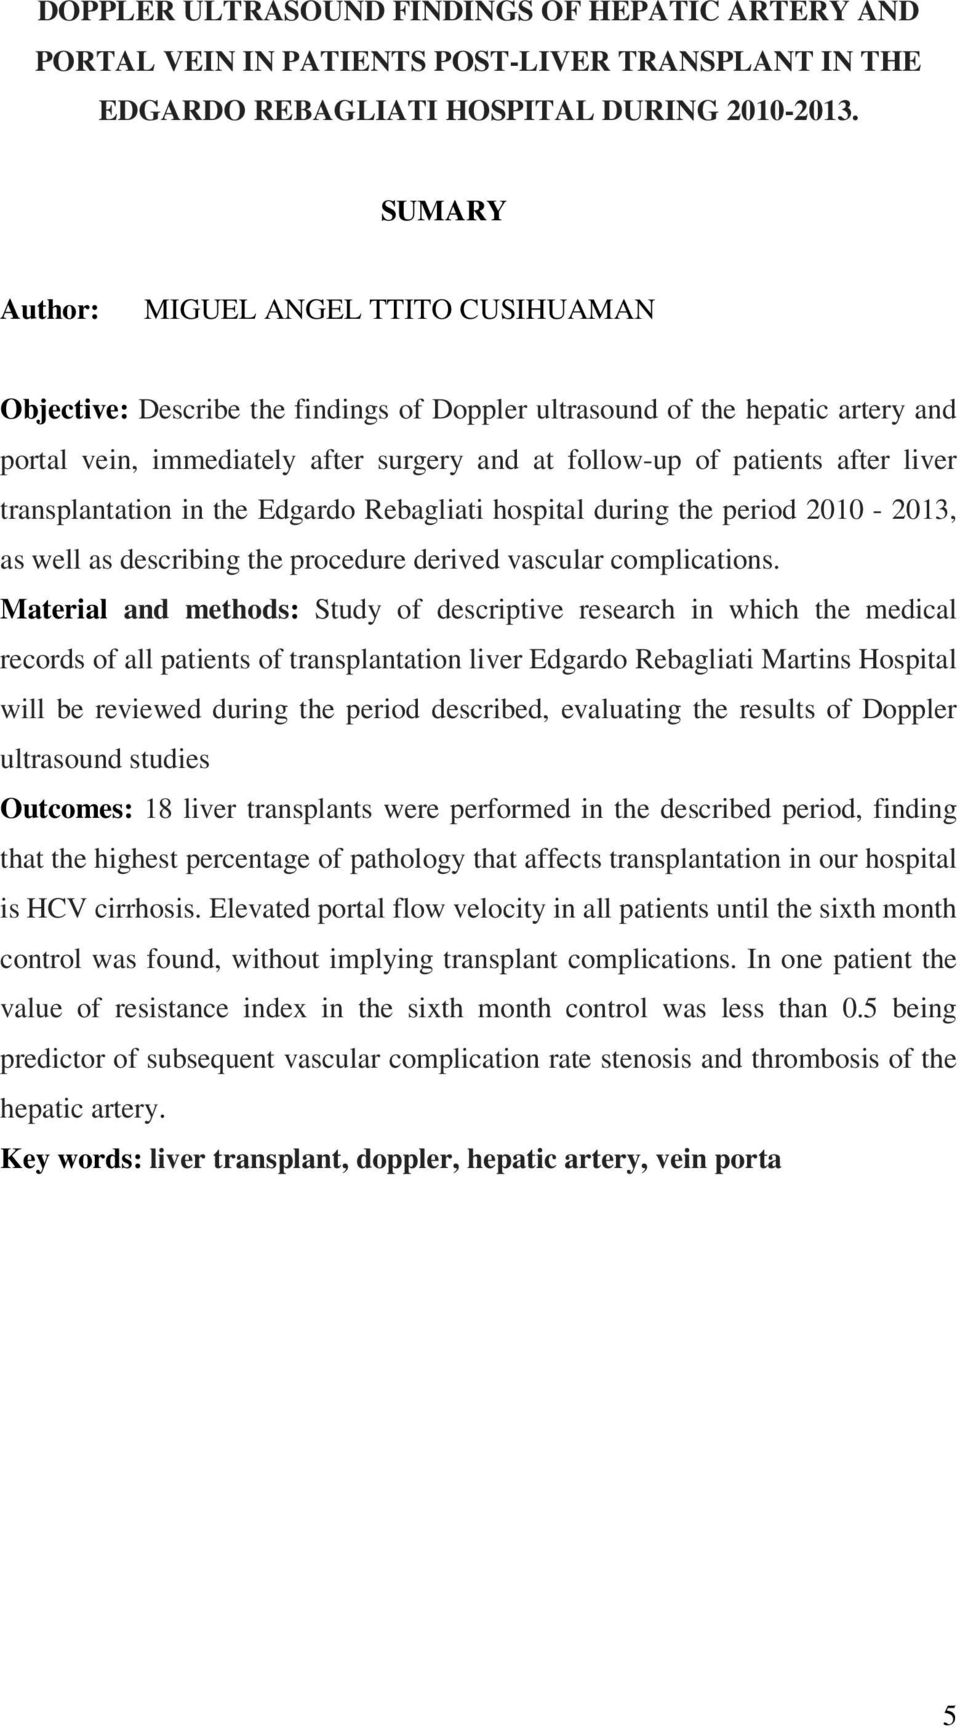 liver transplantation in the Edgardo Rebagliati hospital during the period 2010-2013, as well as describing the procedure derived vascular complications.